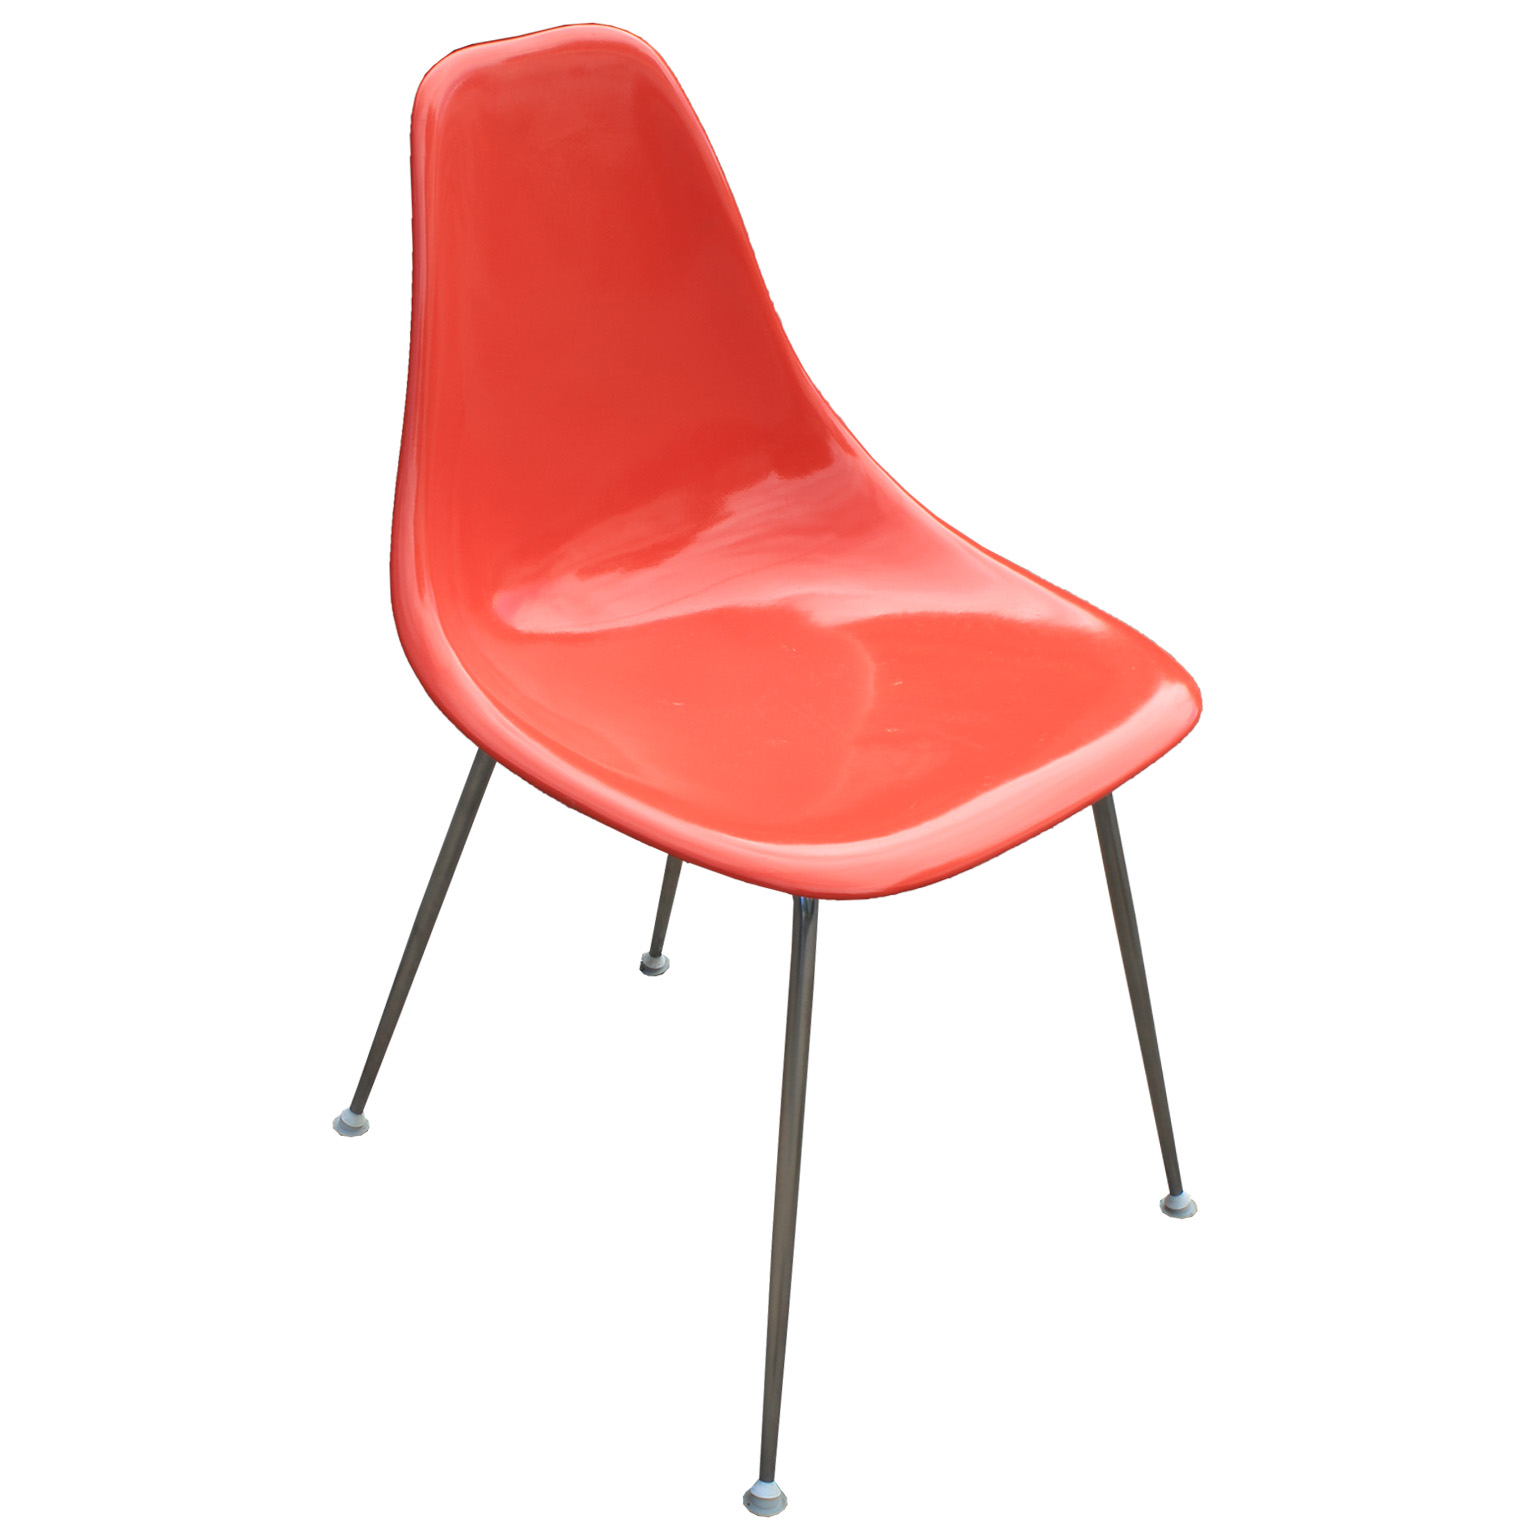 Burke Molded Plastic Chairs 14 Available